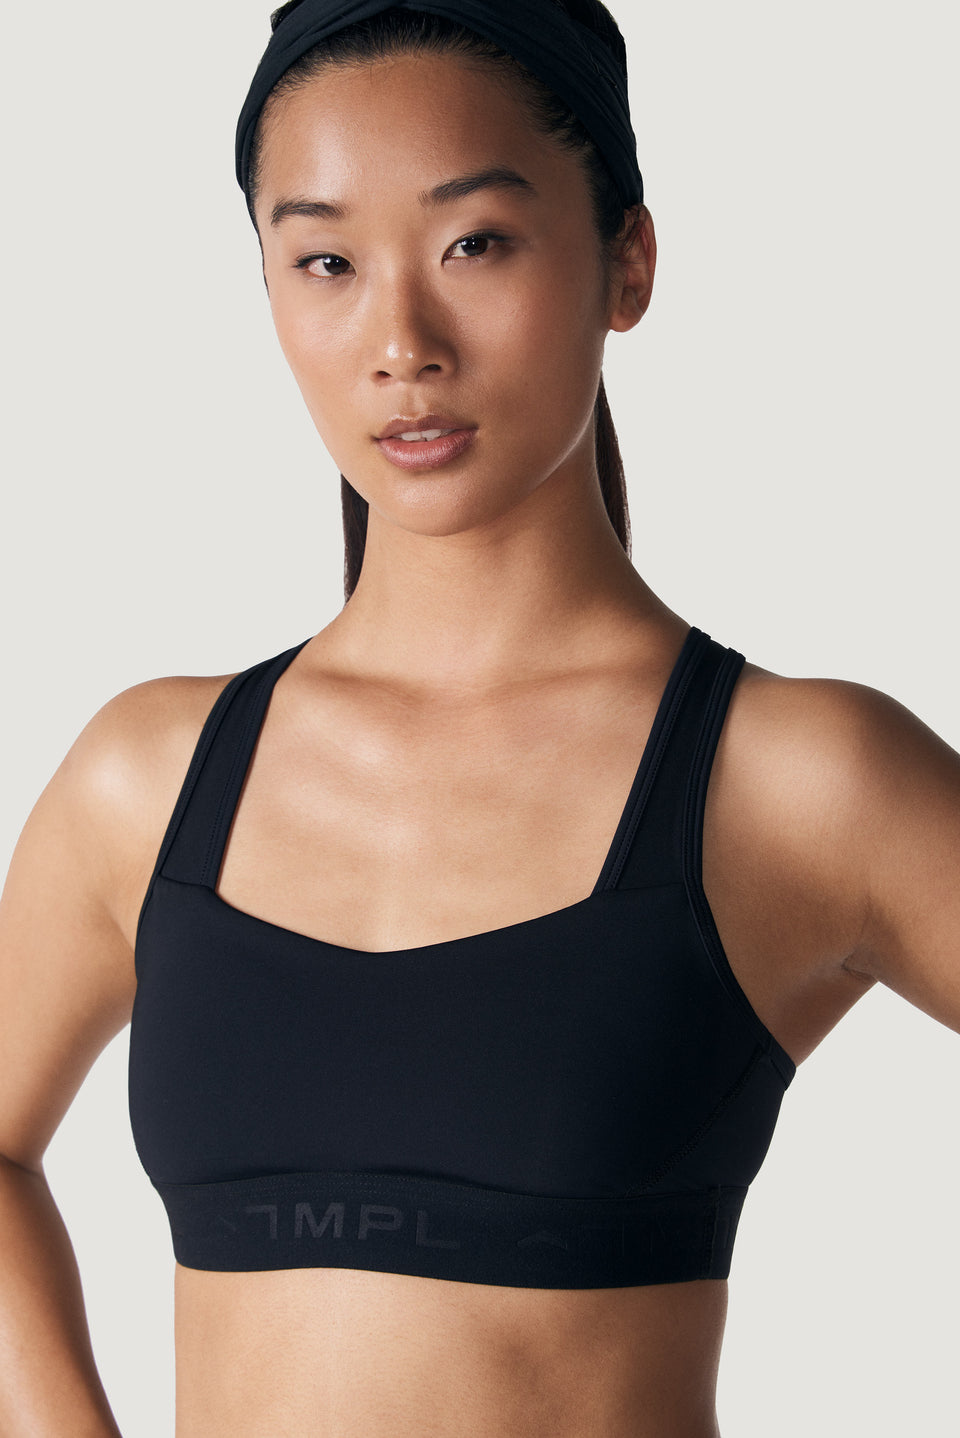 TMPL Sportswear Women's Awoke High Impact Sports Bra